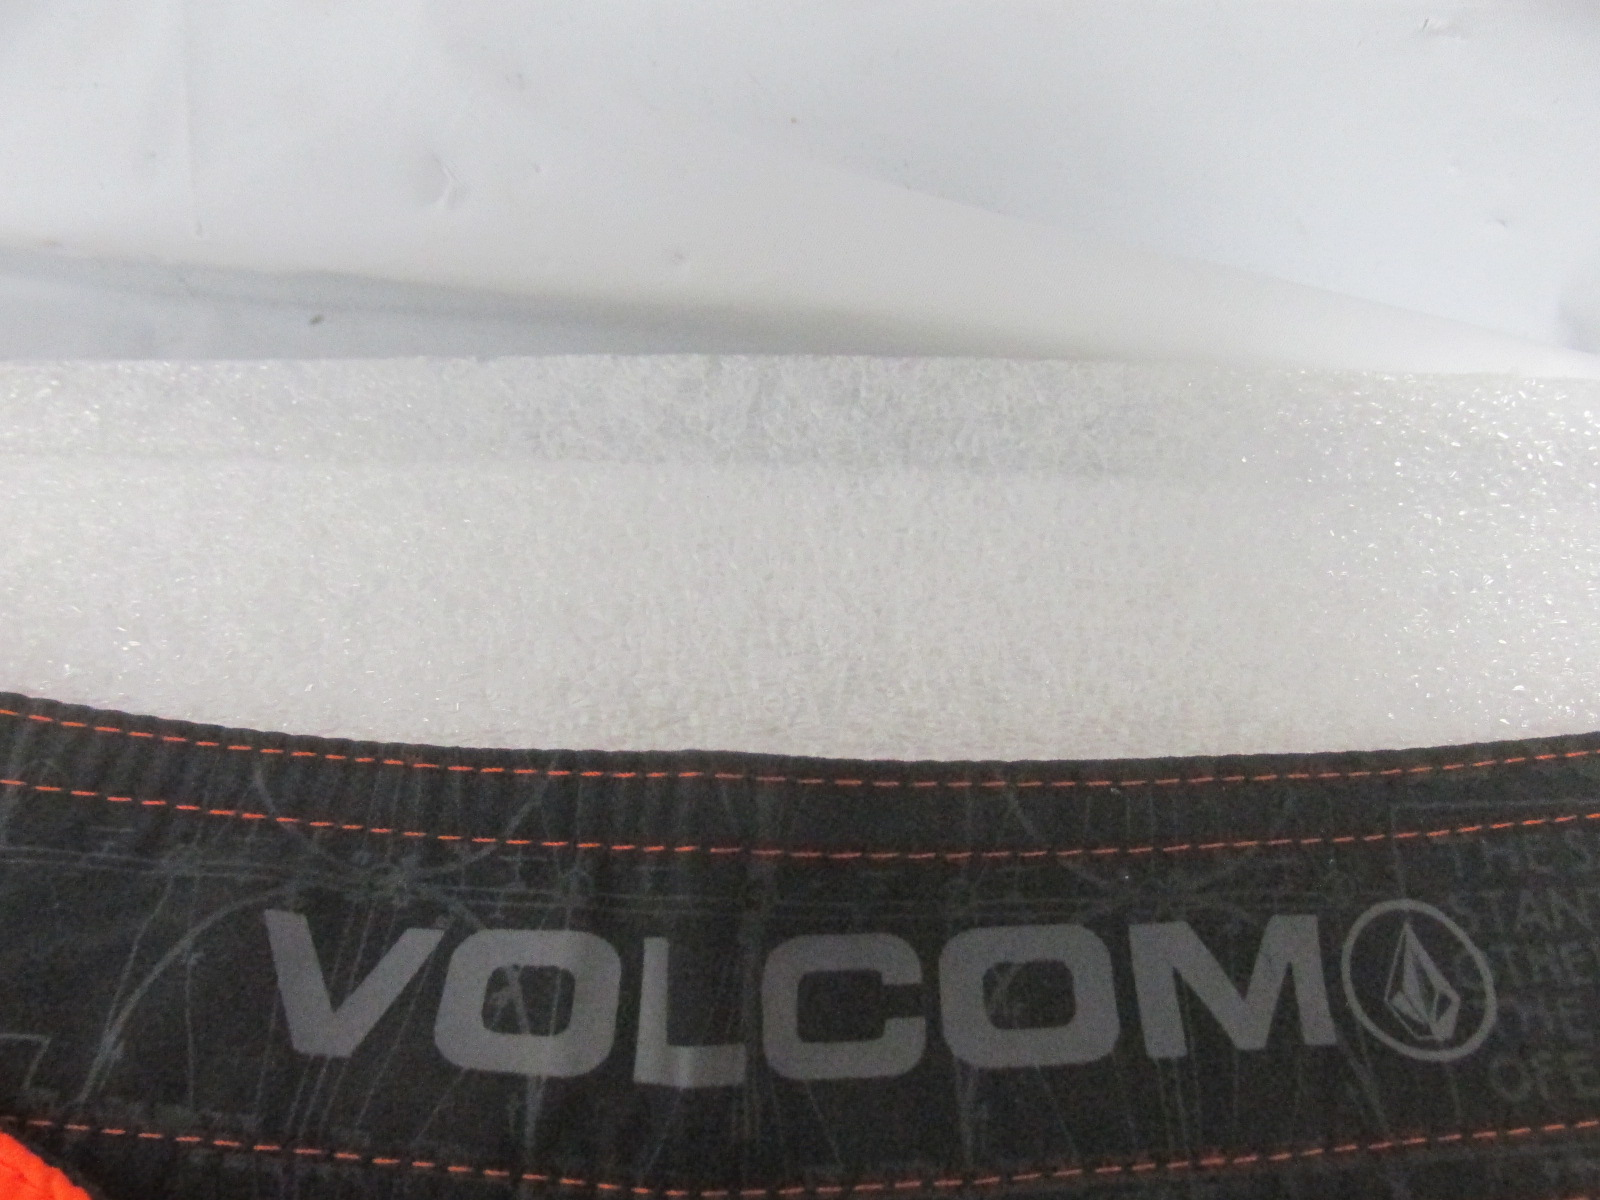 Phoenix Men S Volcom Shorts Online Auction Auction